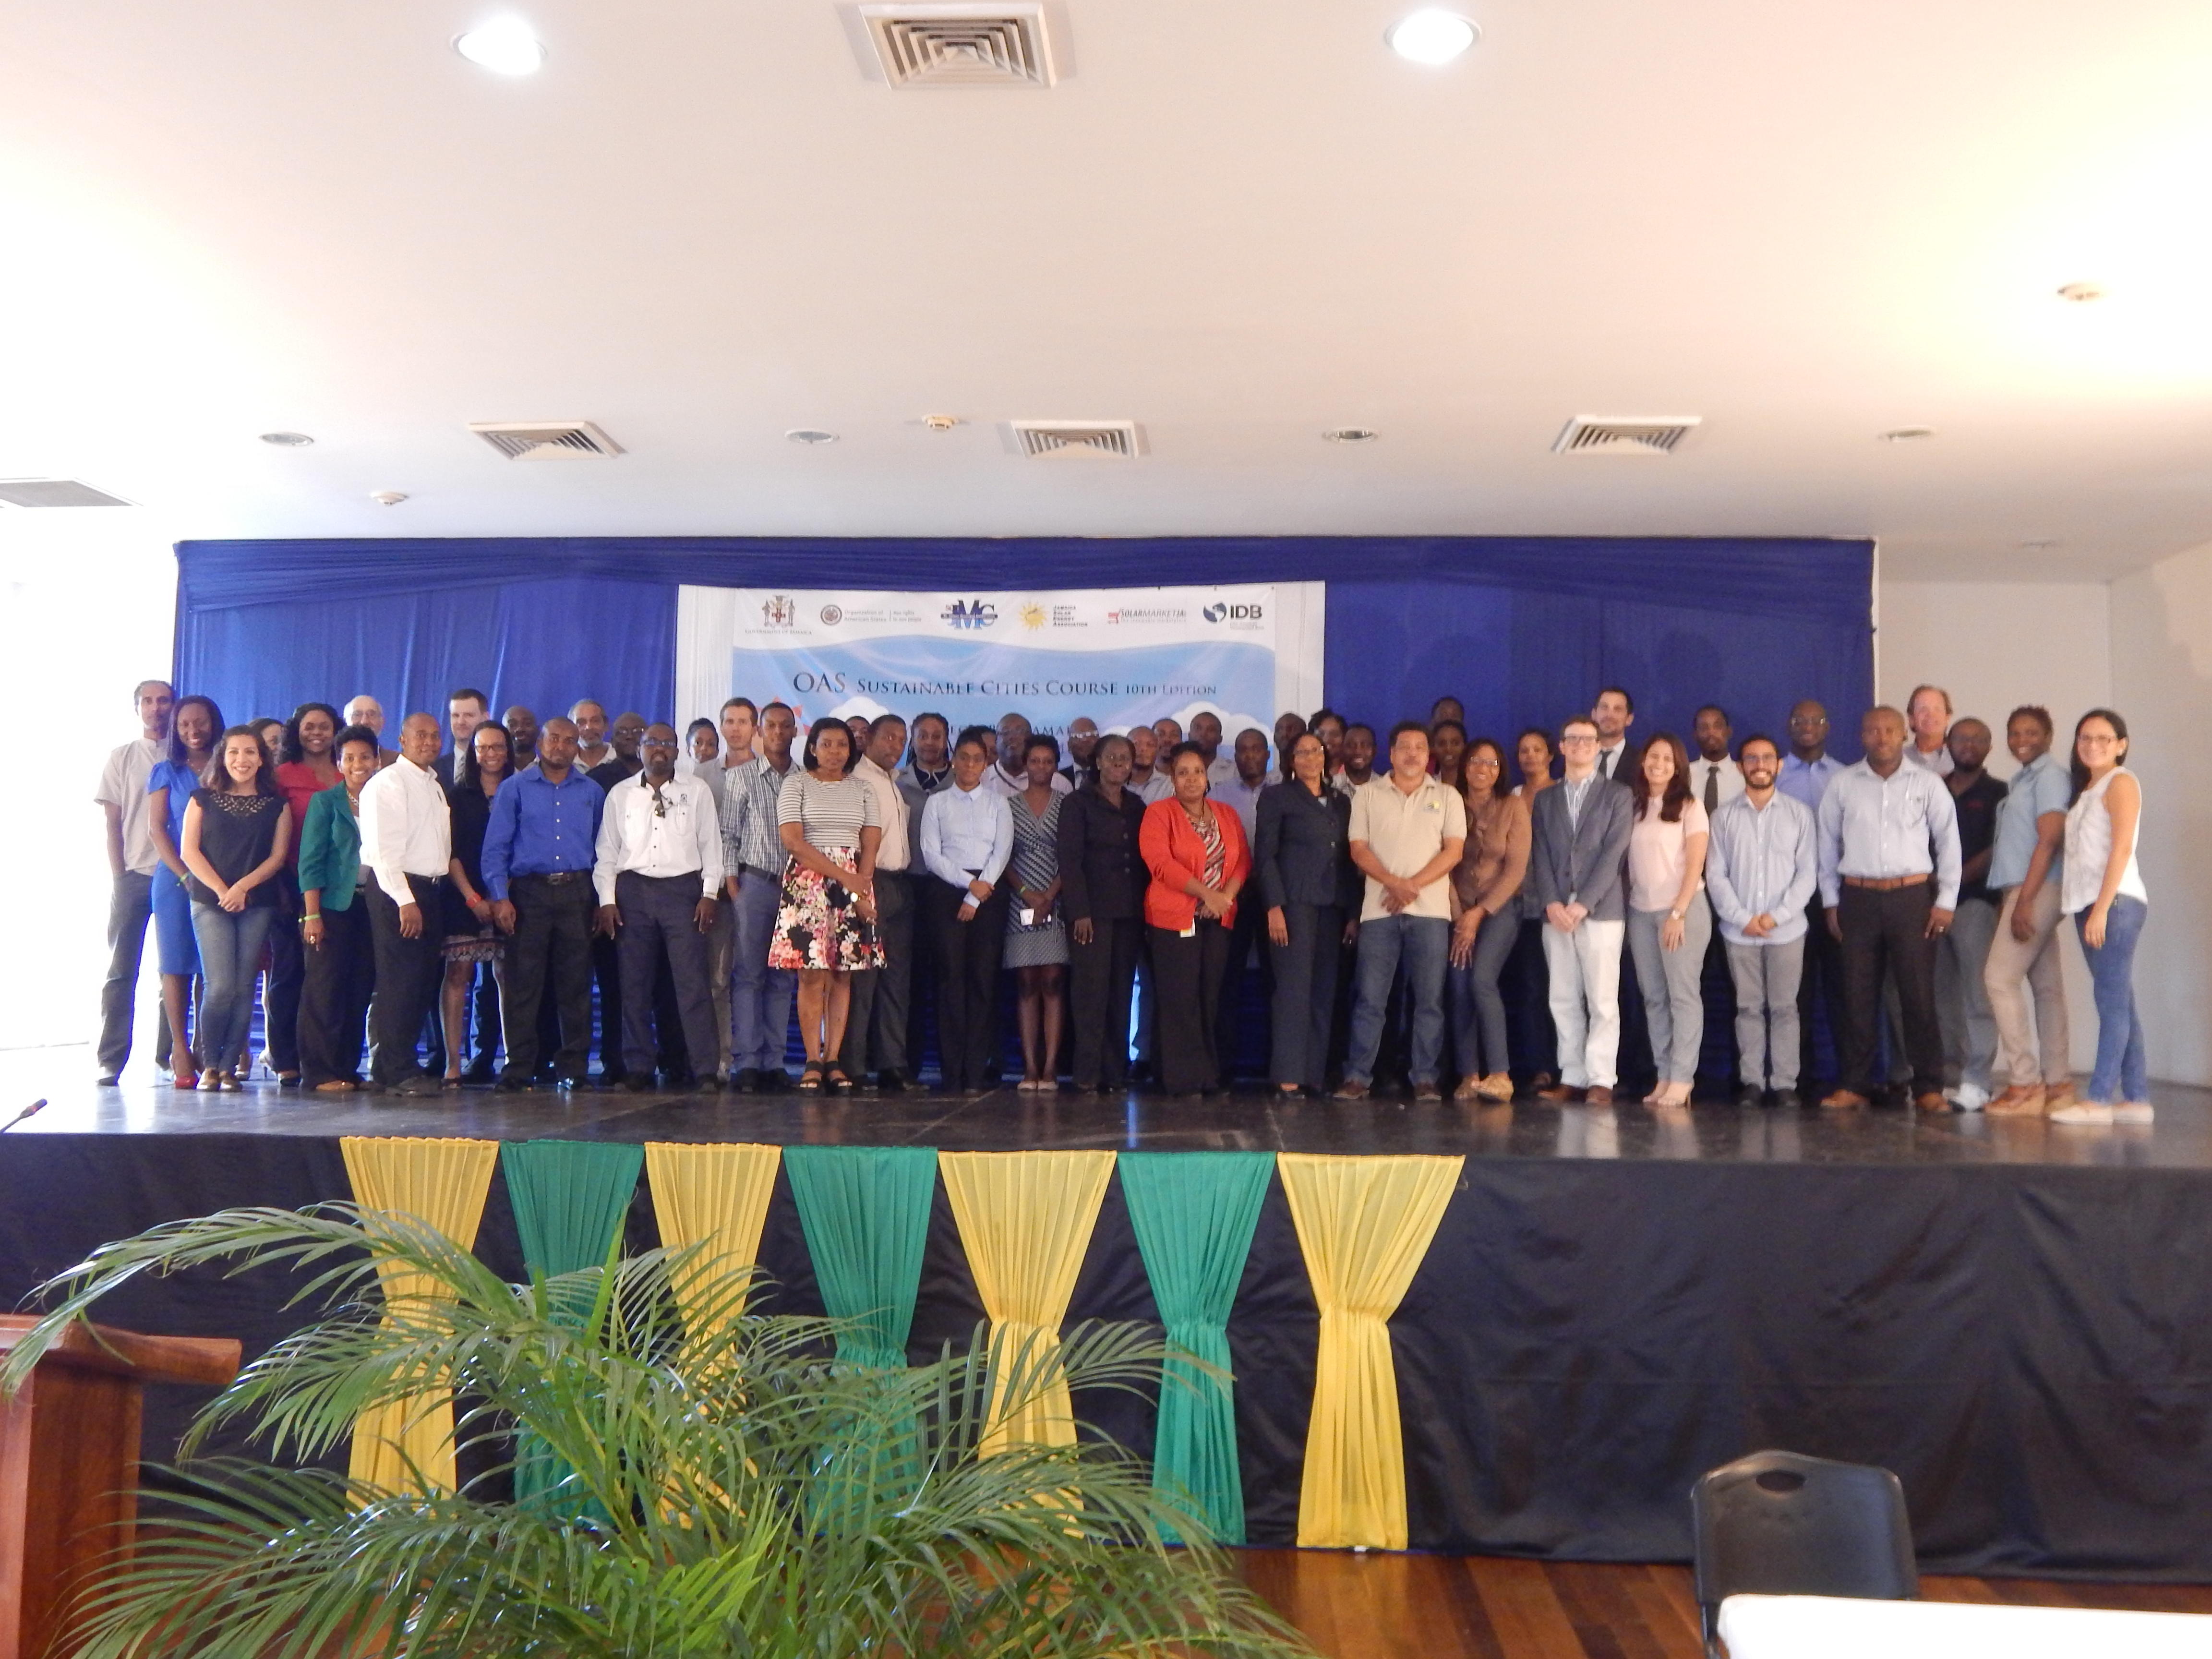 Sustainable Cities Course 10th Edition  , held in Montego Bay Jamaica